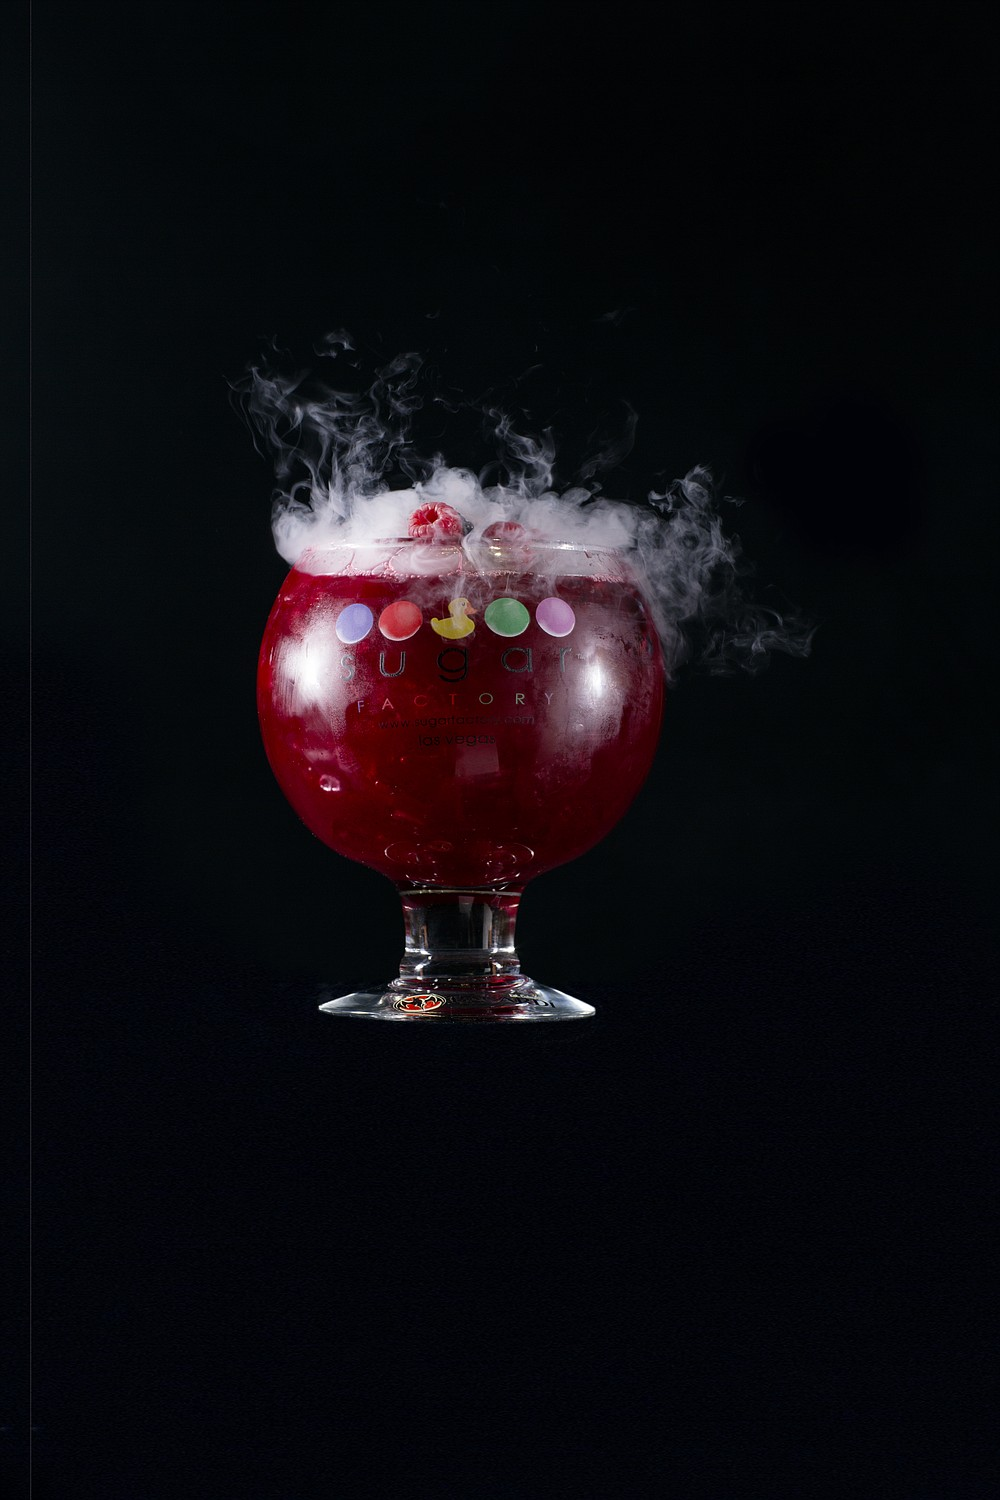 The Berry Bliss Goblet